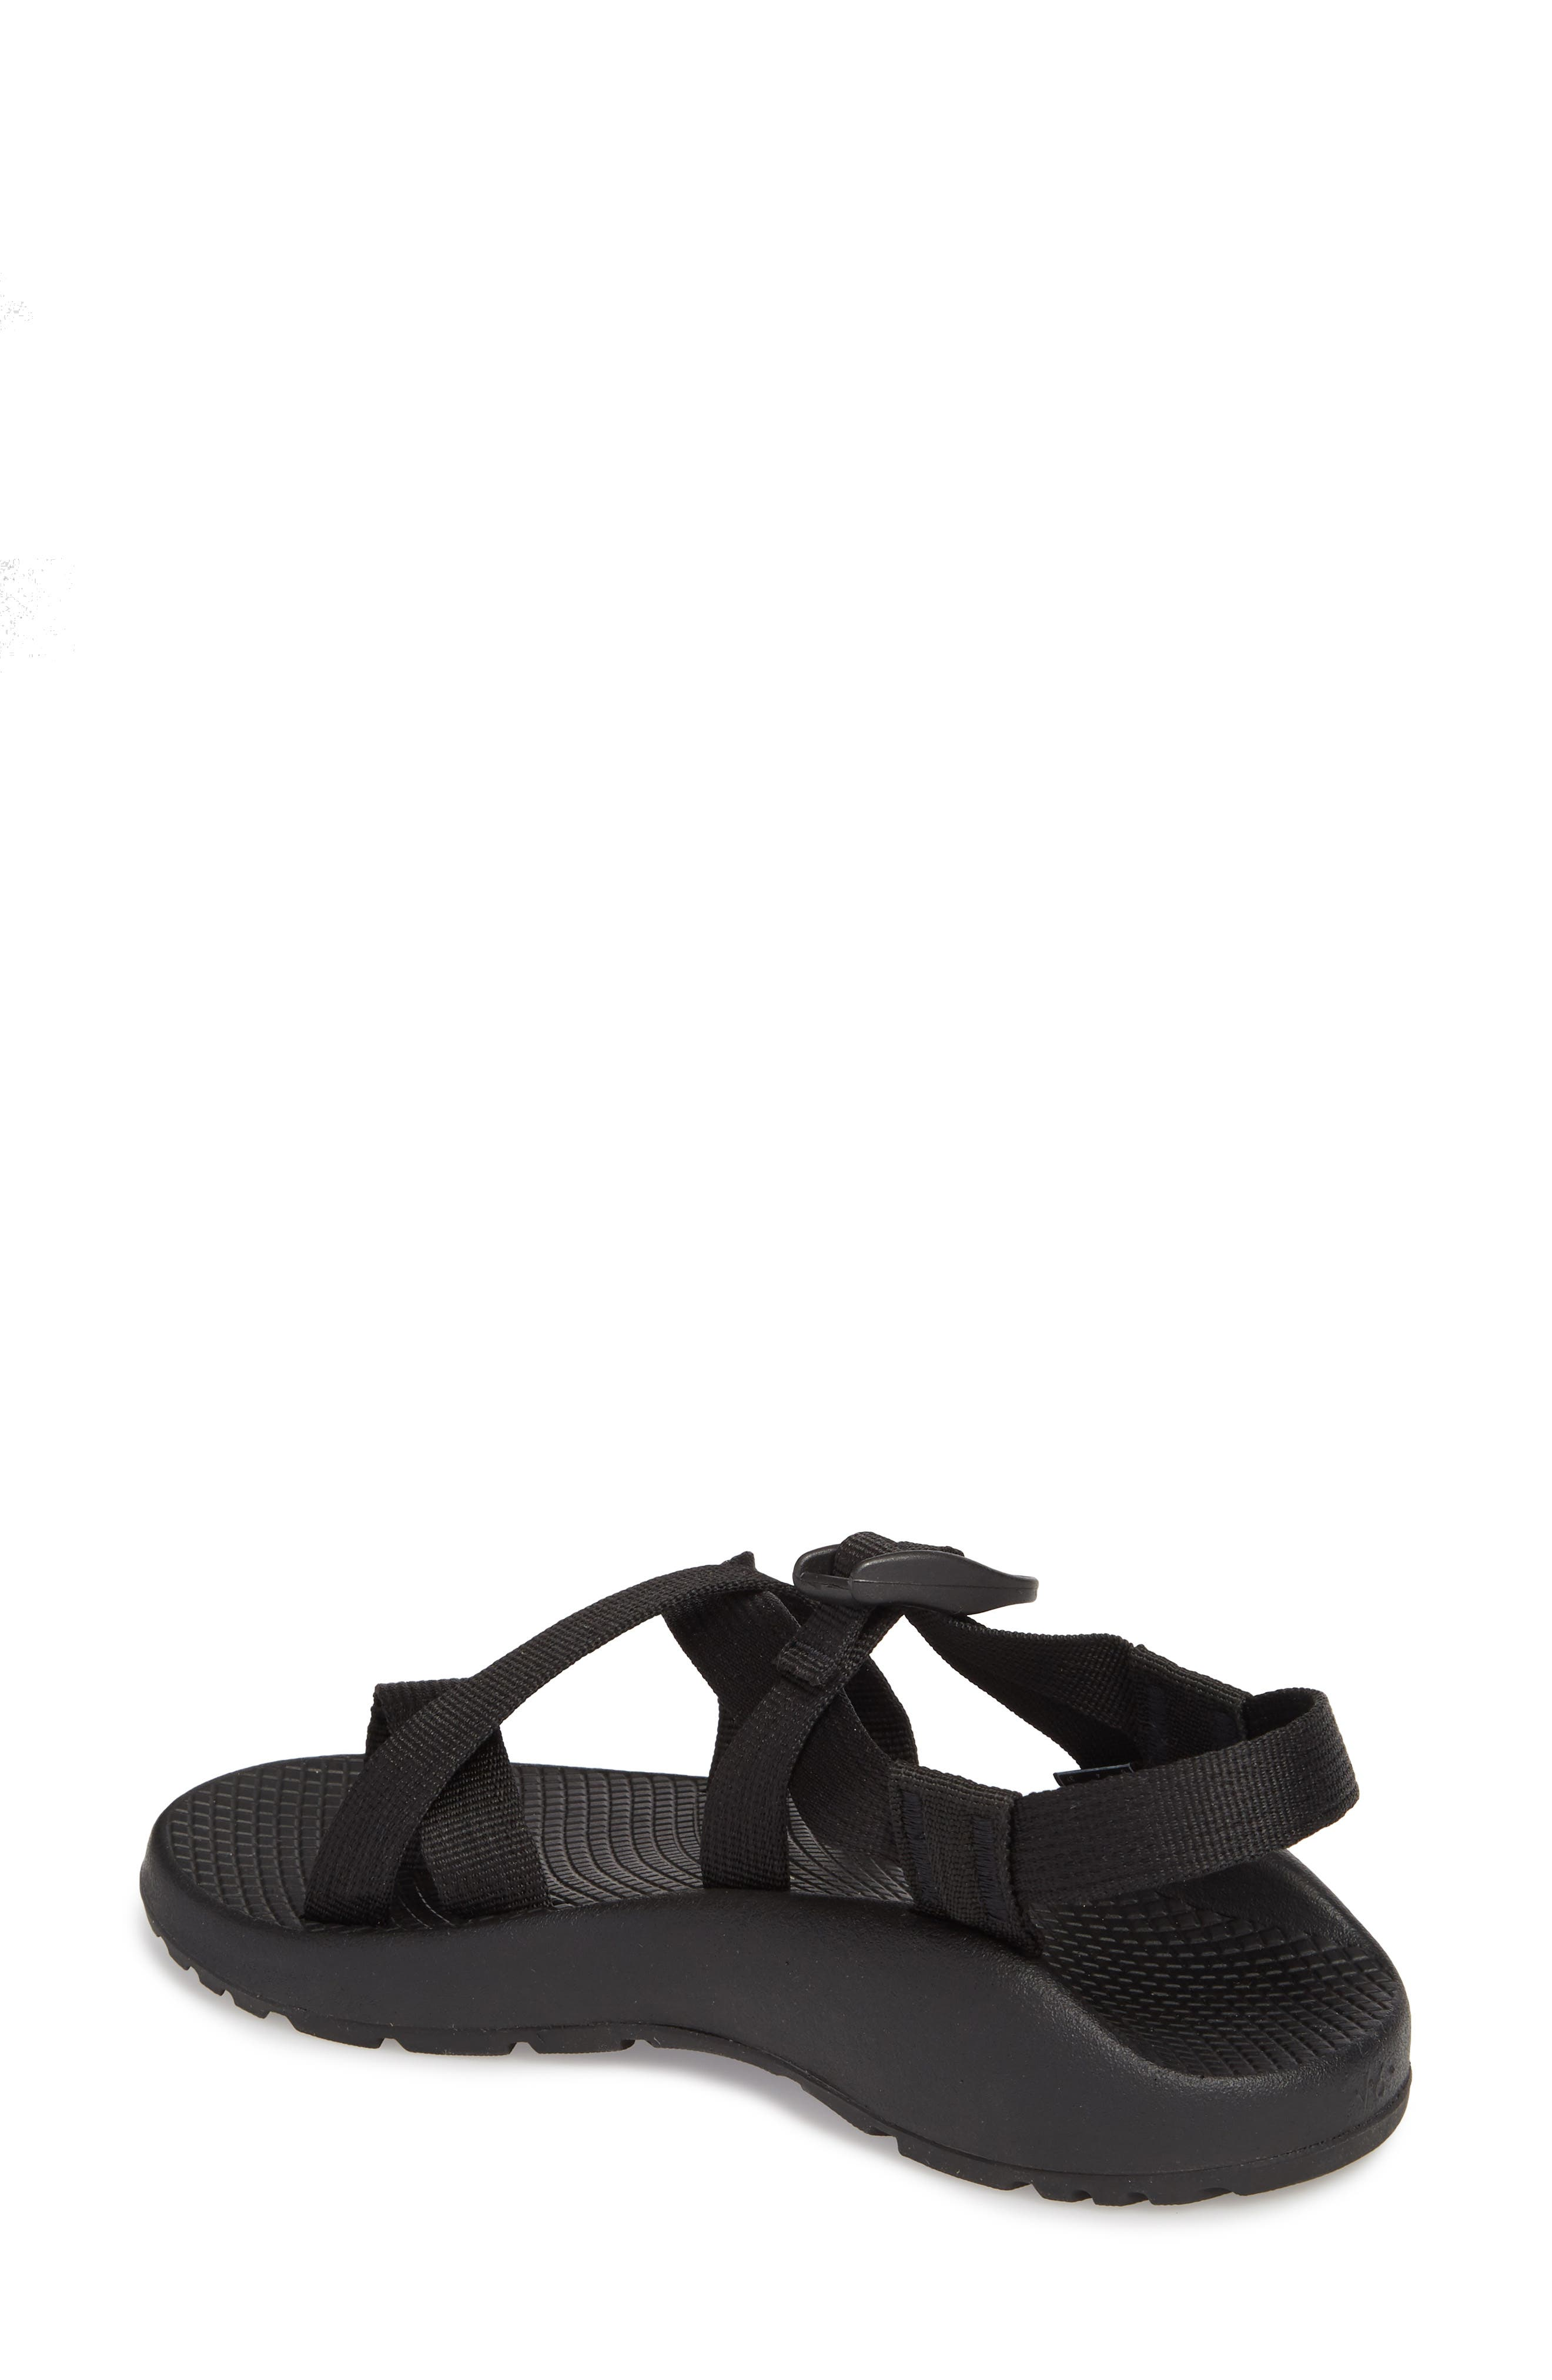 Z/2 Classic Sport Sandal,                             Alternate thumbnail 2, color,                             Black